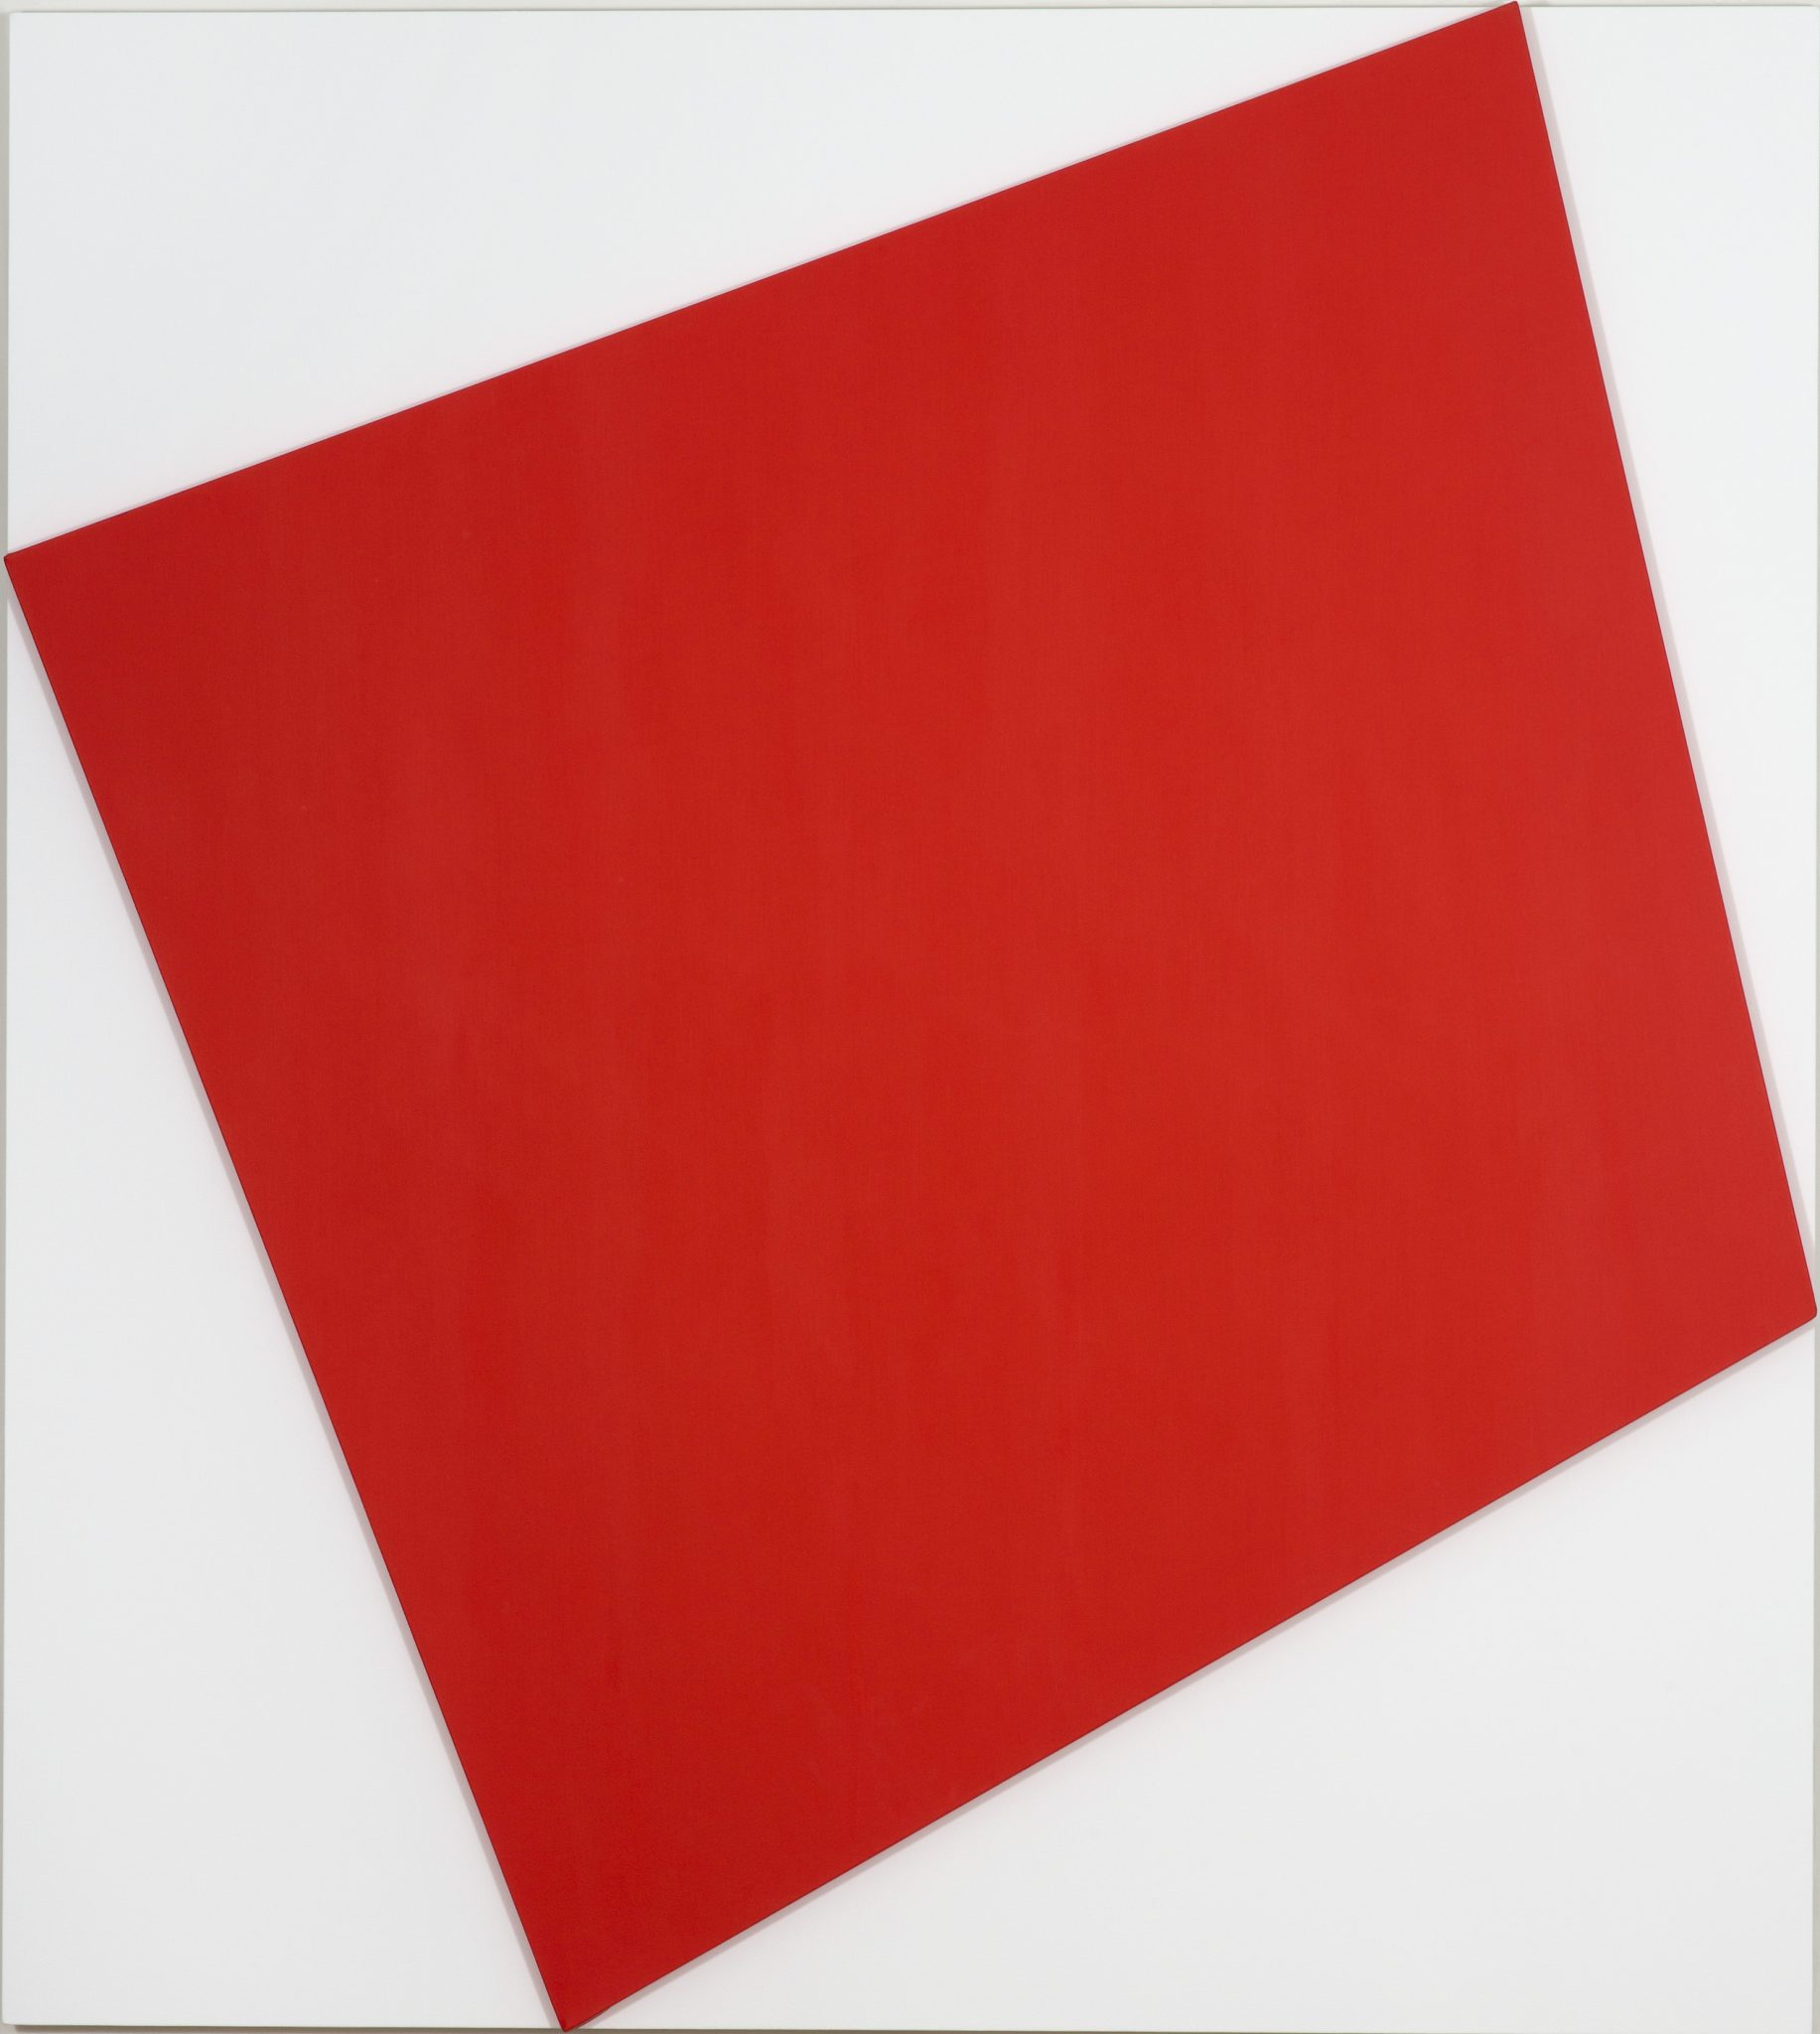 Ellsworth Kelly, Red Relief with White,